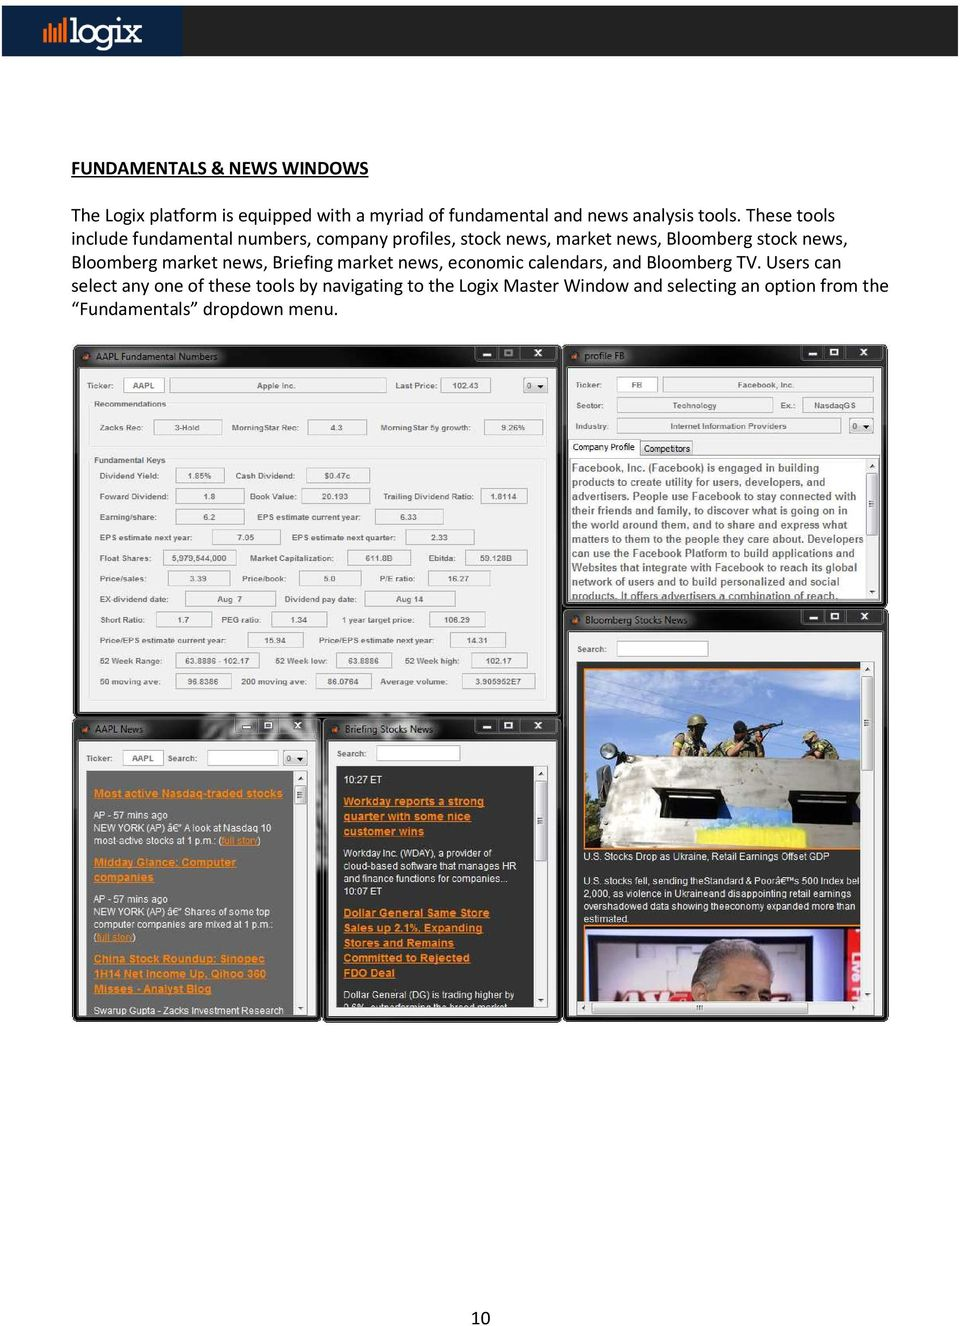 Bloomberg market news, Briefing market news, economic calendars, and Bloomberg TV.